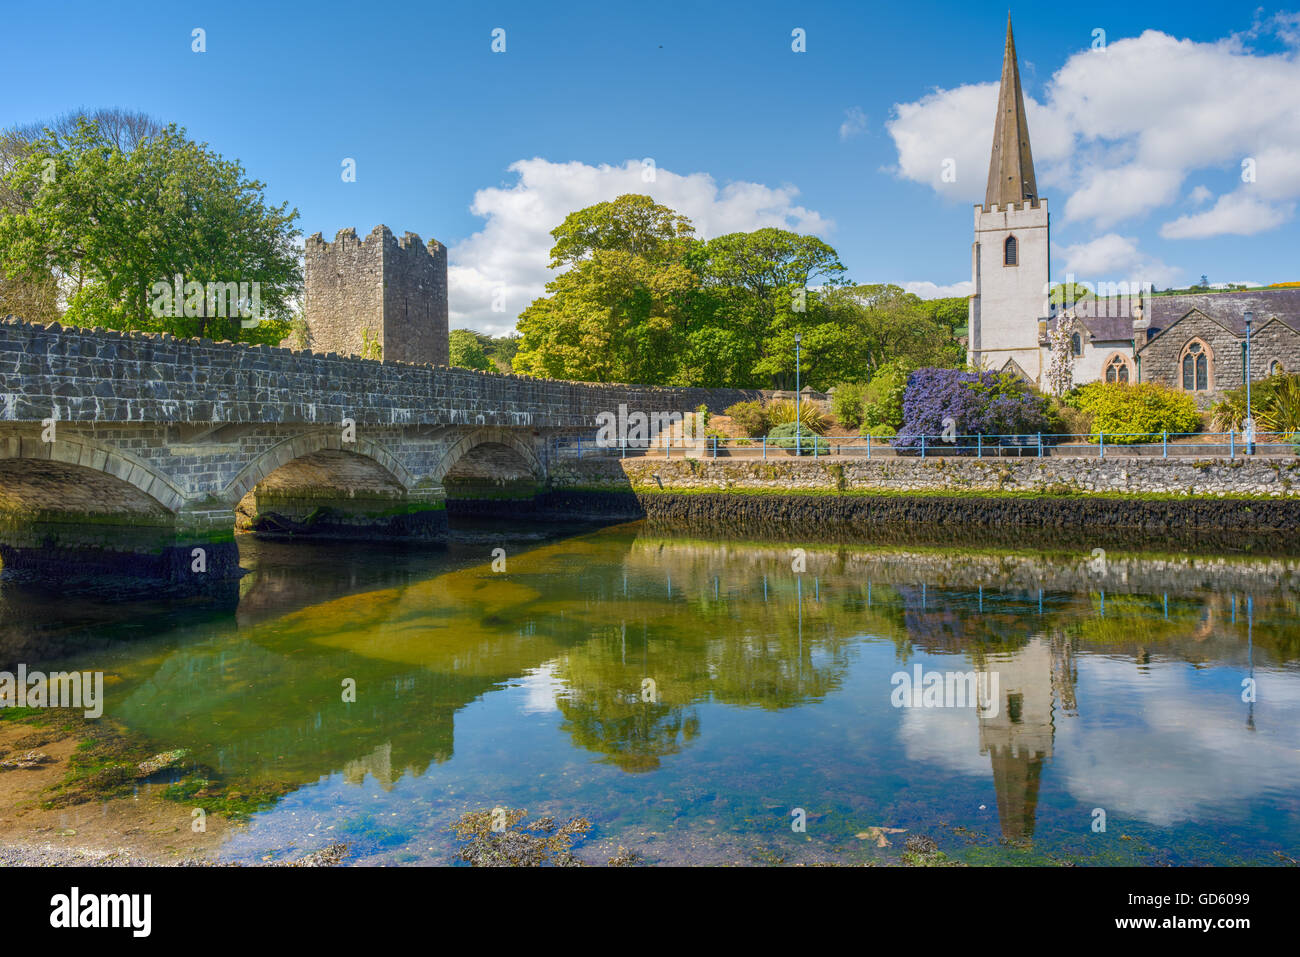 Glenarm (Irish: valley of the army). a village dating back to Norman times set in a Conservation Area, Northern - Stock Image